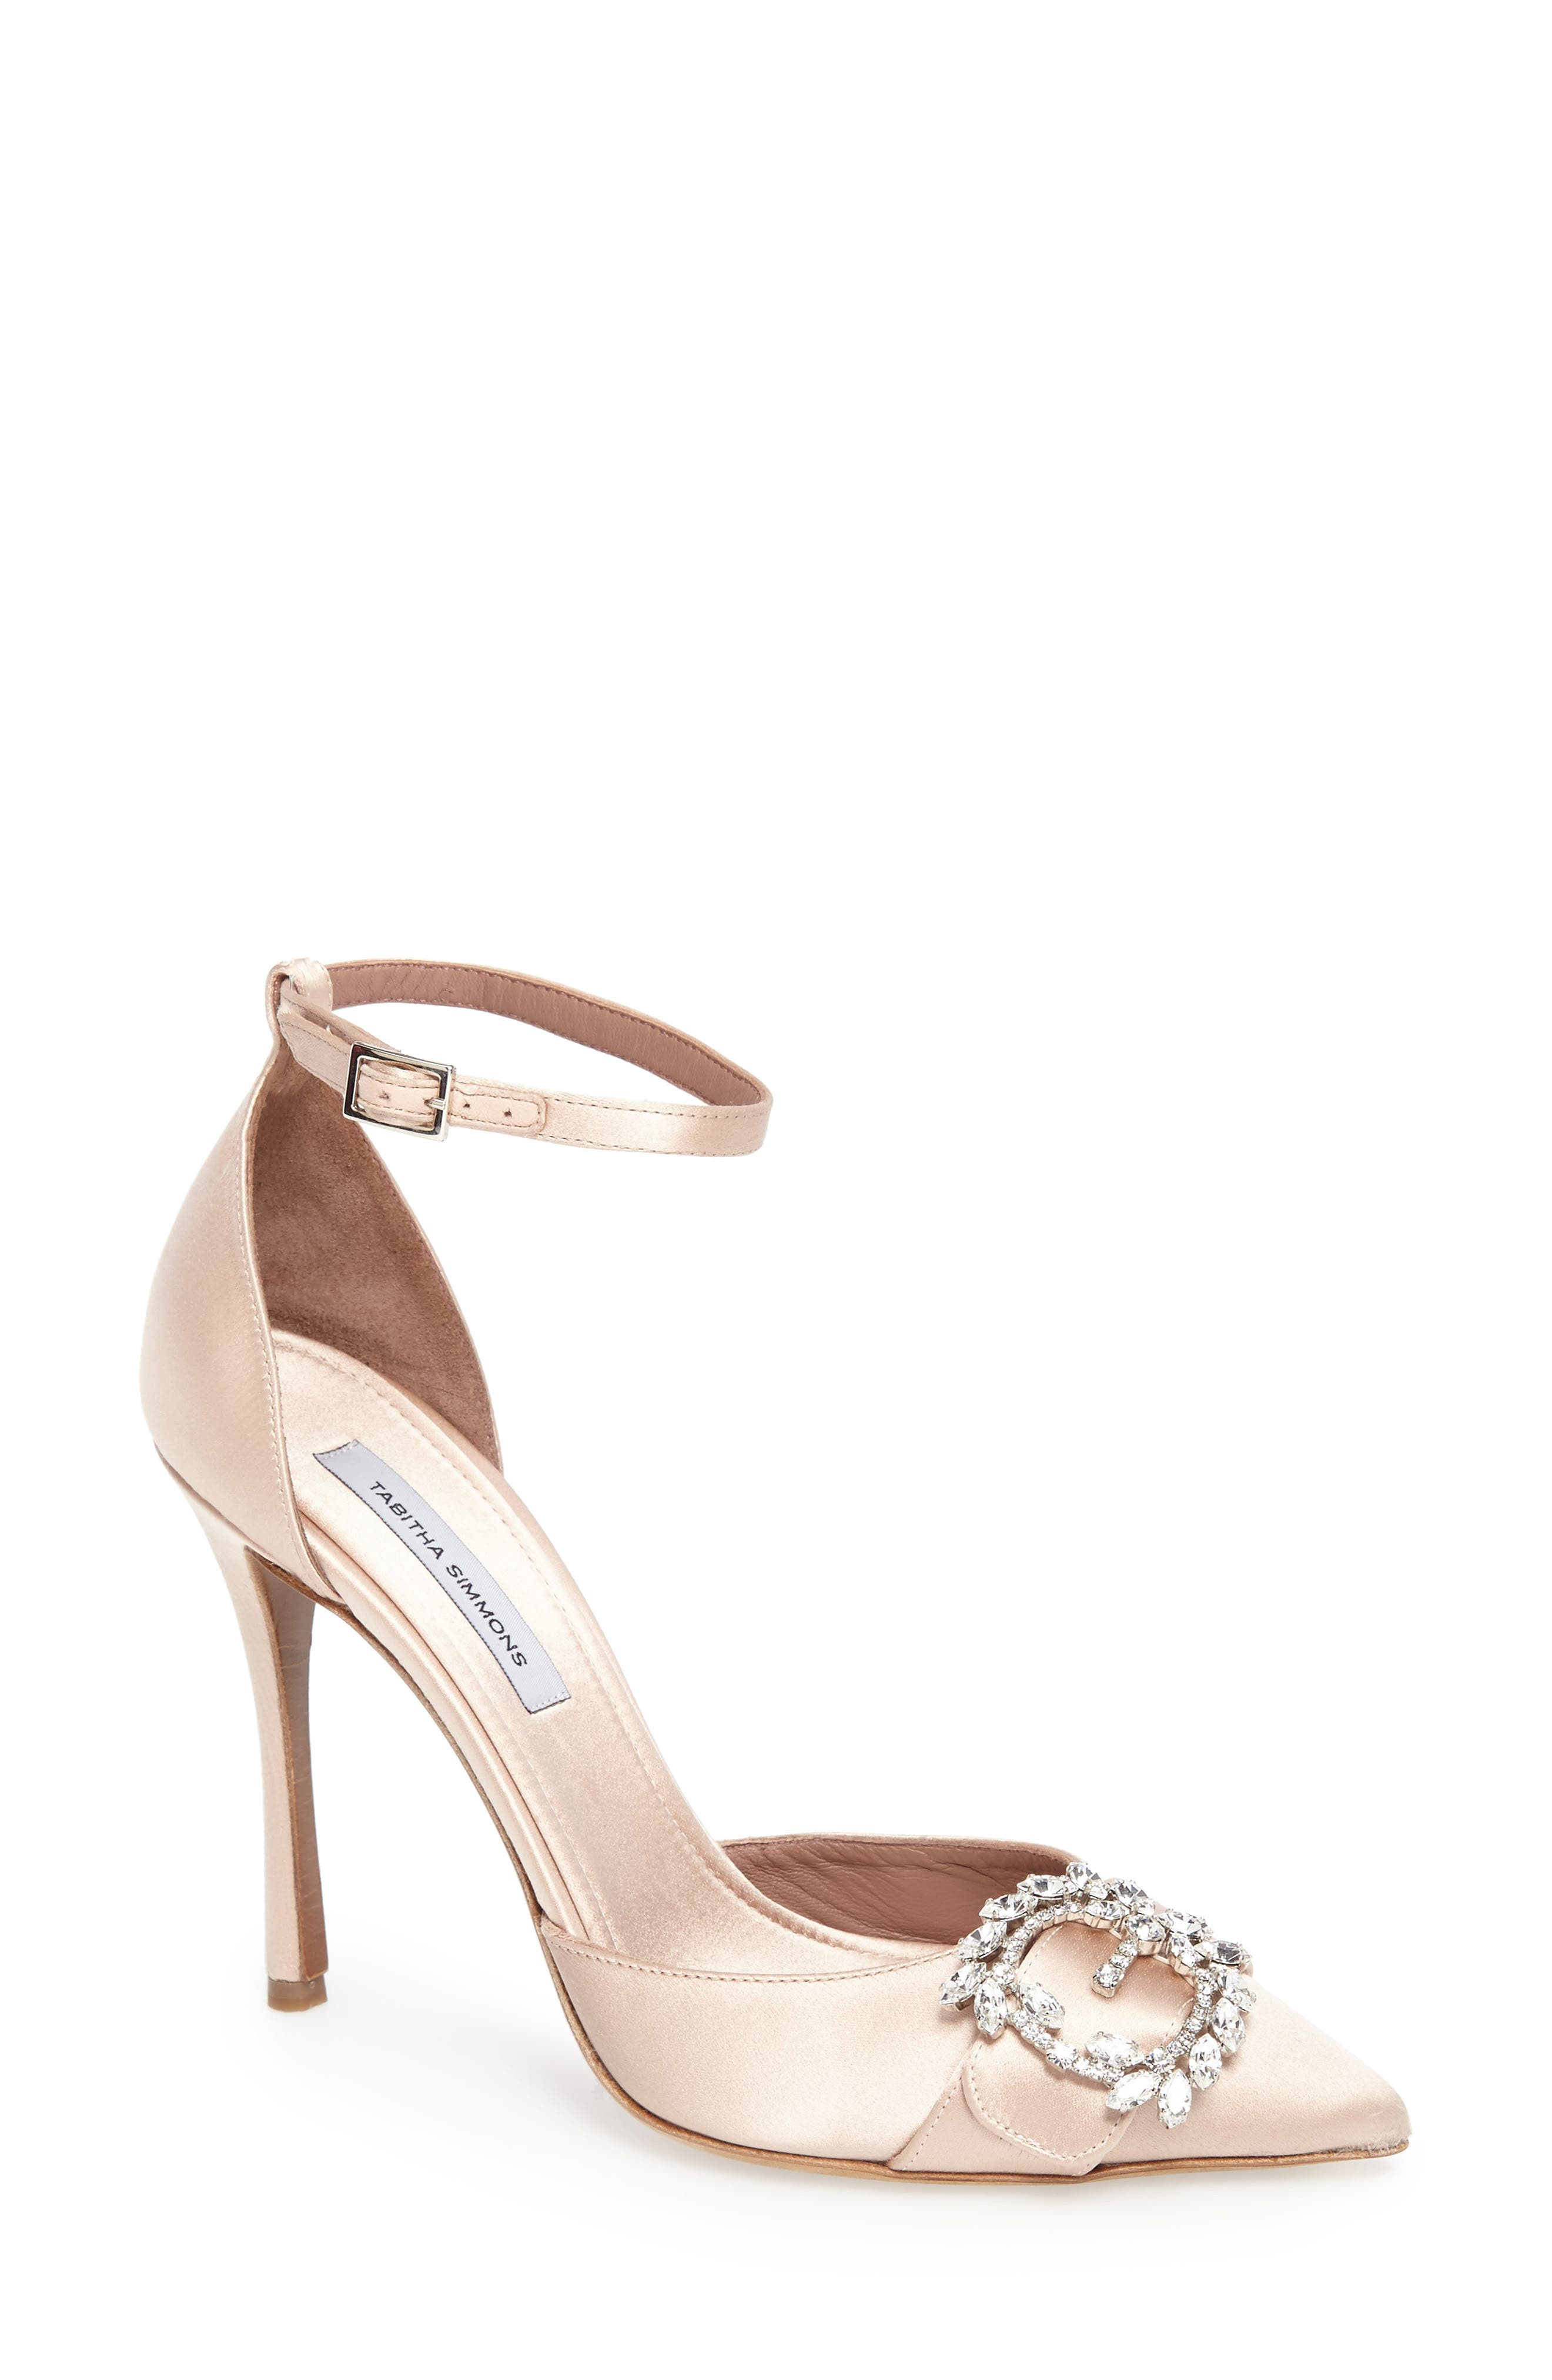 Main Image - Tabitha Simmons Tie The Knot Crystal Buckle Pump (Women)